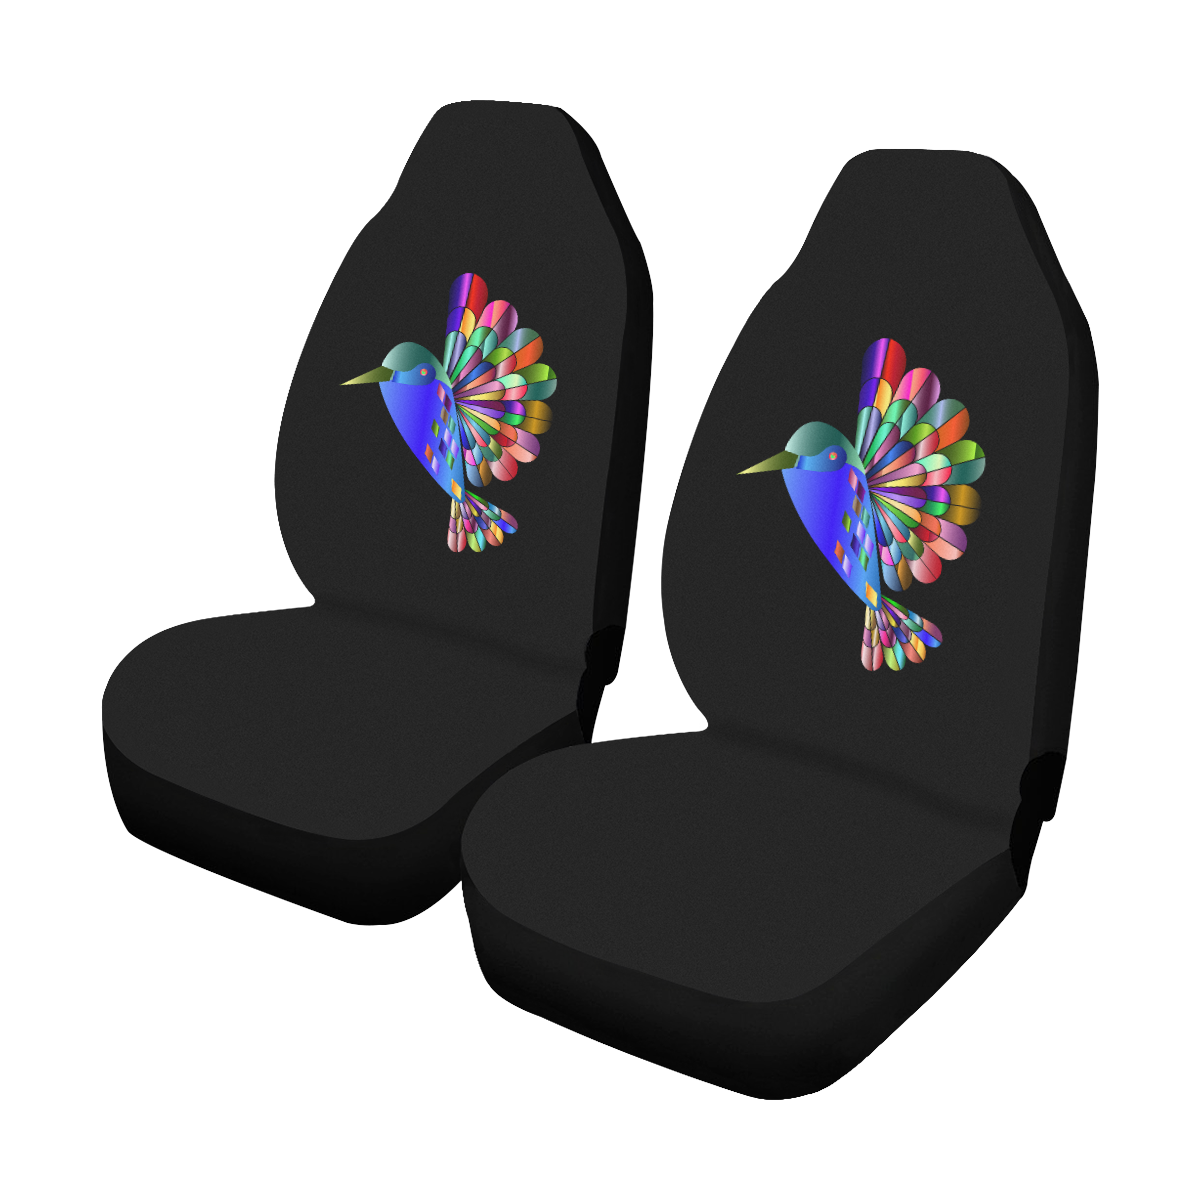 2 Pieces Set T Shirt Design Front Car Seat Cover Universal Fit Car Care Seat Protector for Car Seats Polyester Fabric Car Seat Cover Color Name : Blue LBBL Seat Cover Sets Car Seat Cover